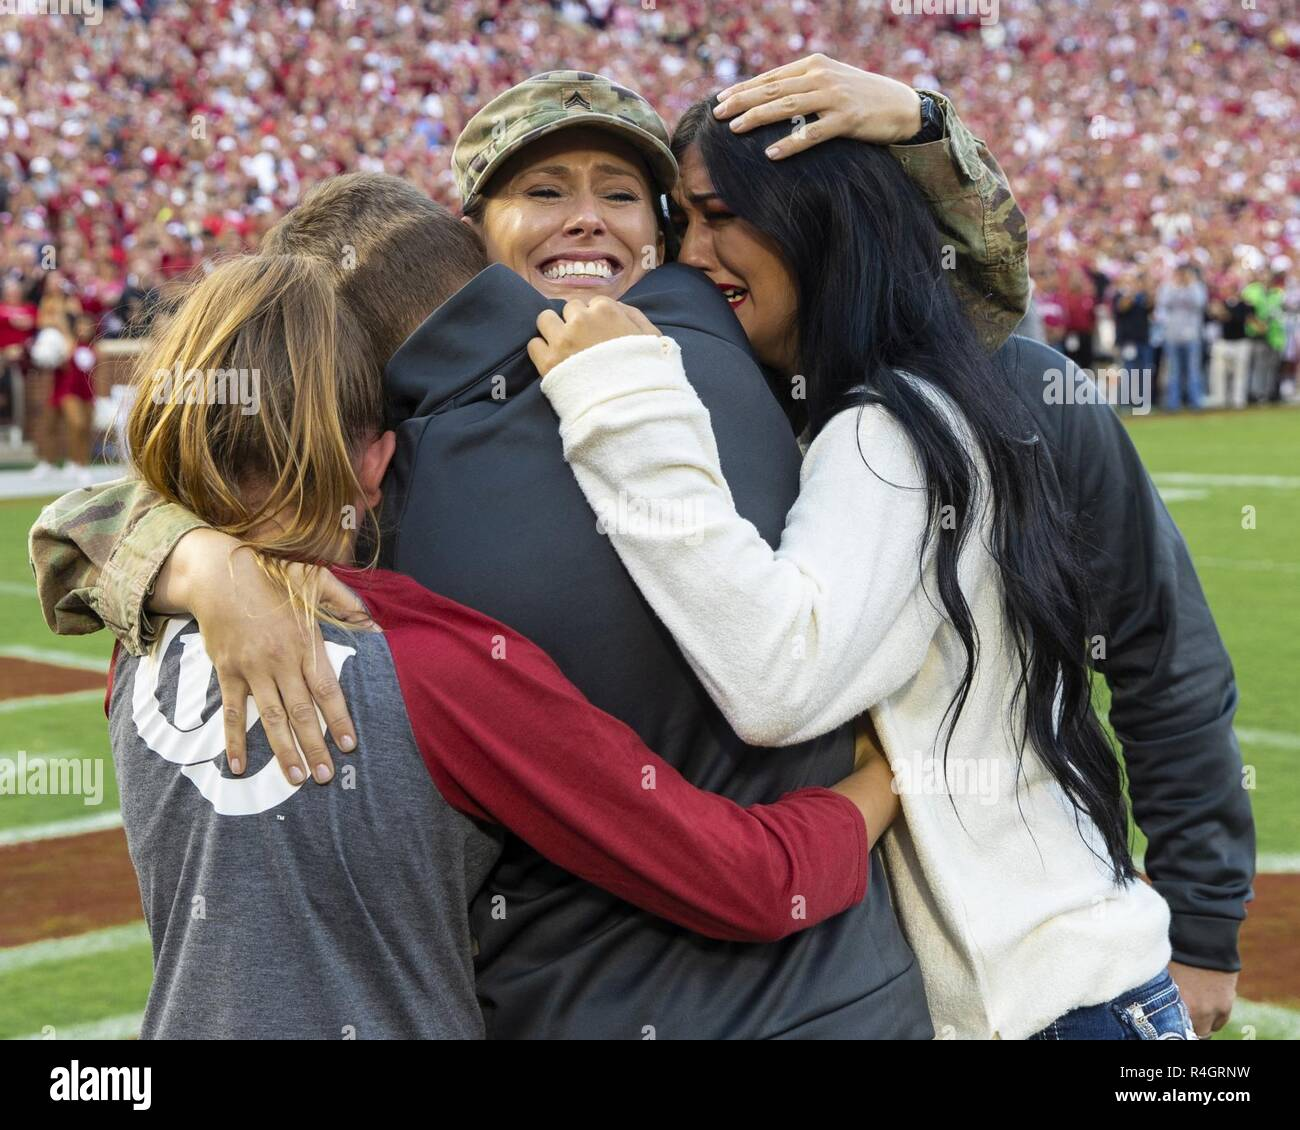 University Of Oklahoma Football Stock Photos & University ...